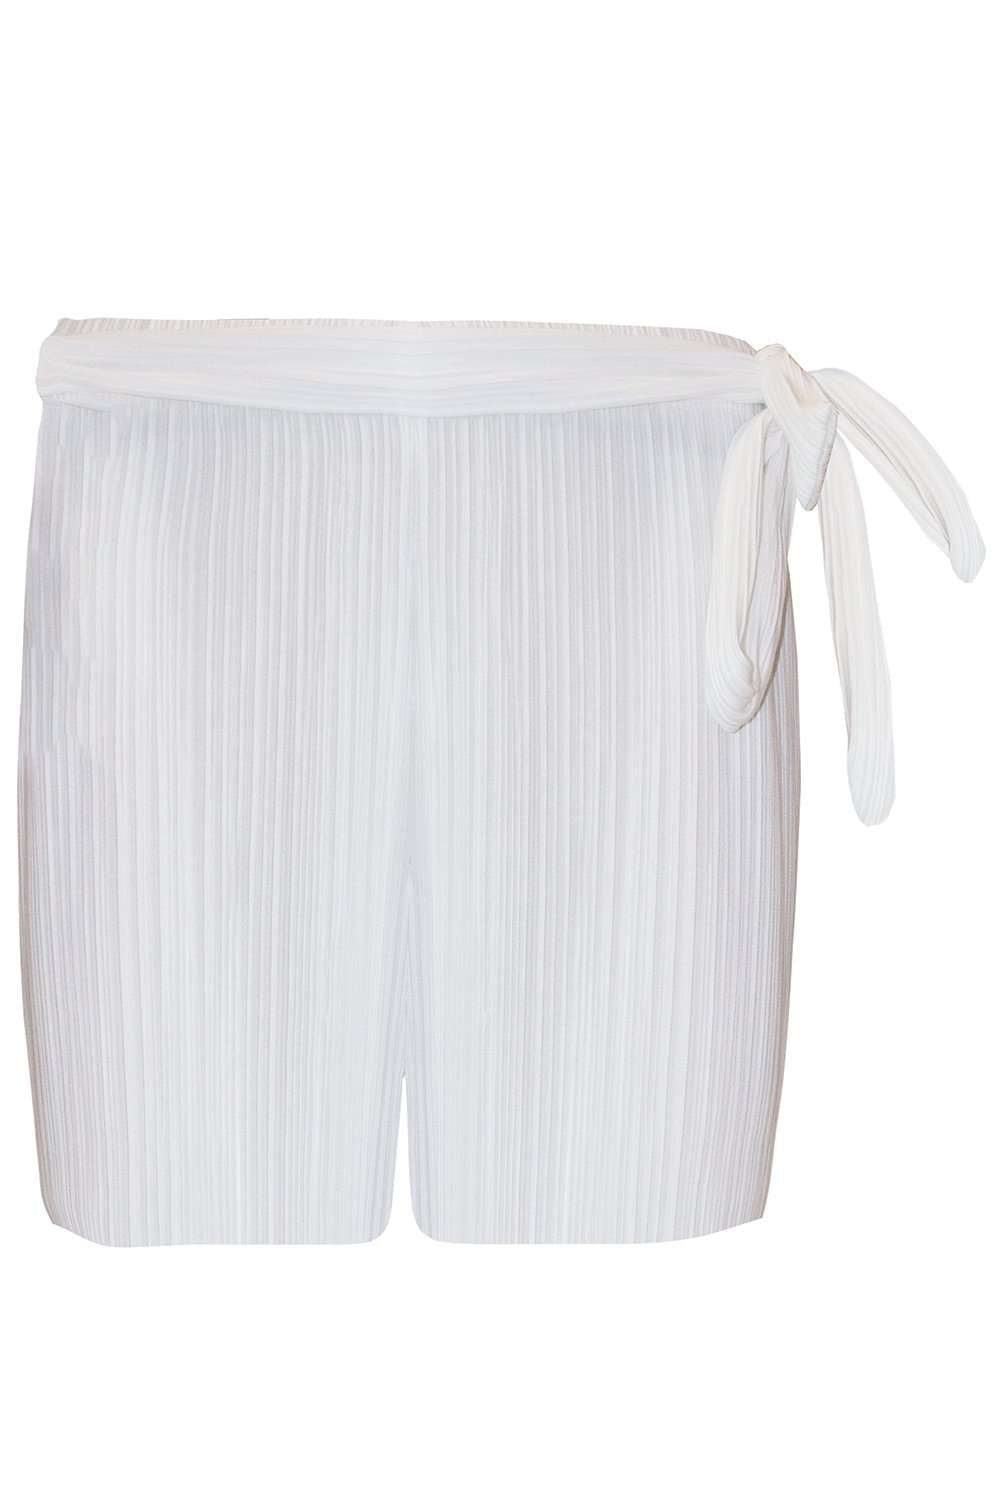 Nikki High Waisted Belted Pleated Shorts - bejealous-com